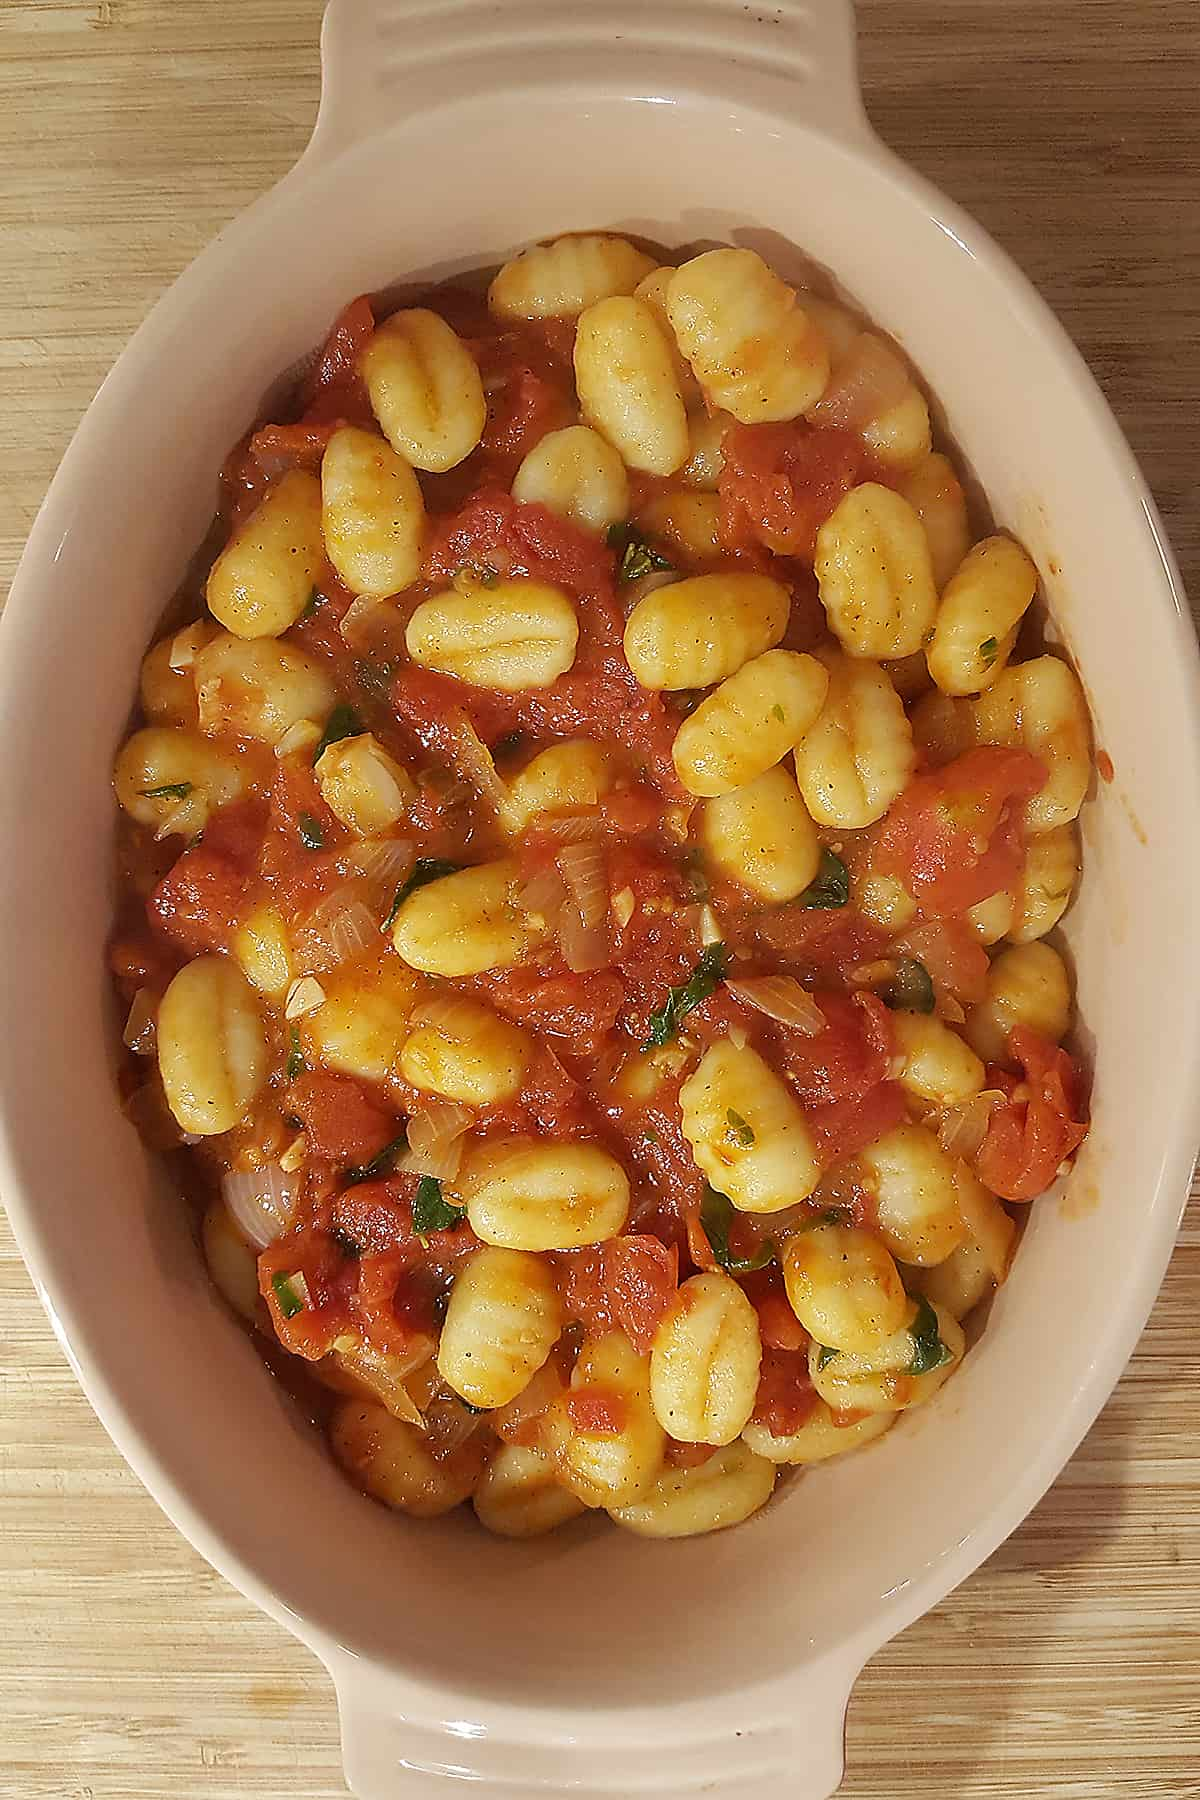 Gnocchi and tomato sauce in baking dish.